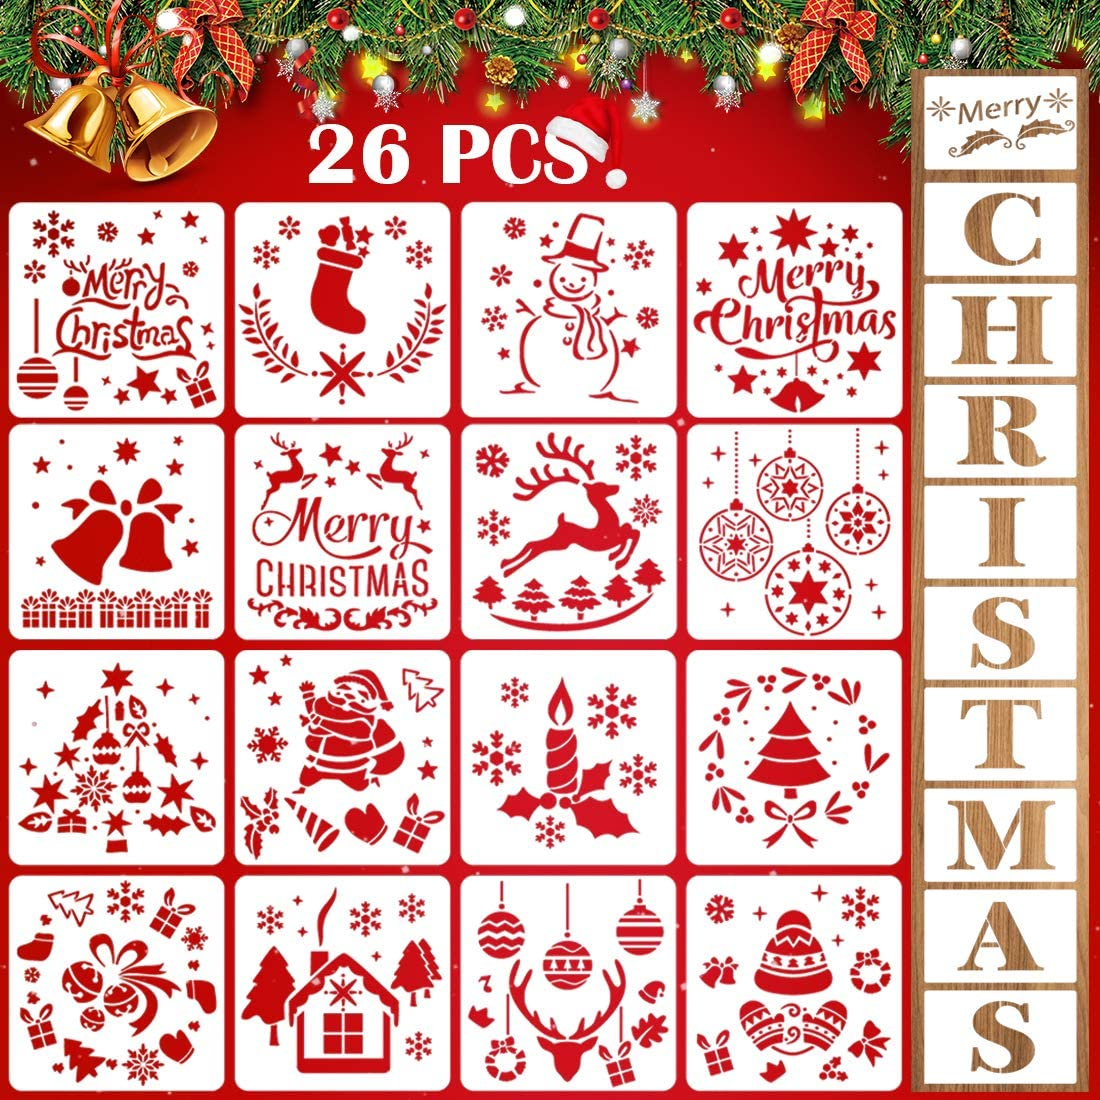 26 PCS Christmas Stencils for Painting On Wood Reusable Plastic Sign Stencils Template Art Supplies for Drawing Spraying Porch Window Diary Cards Door Furniture Wall Floor Decor